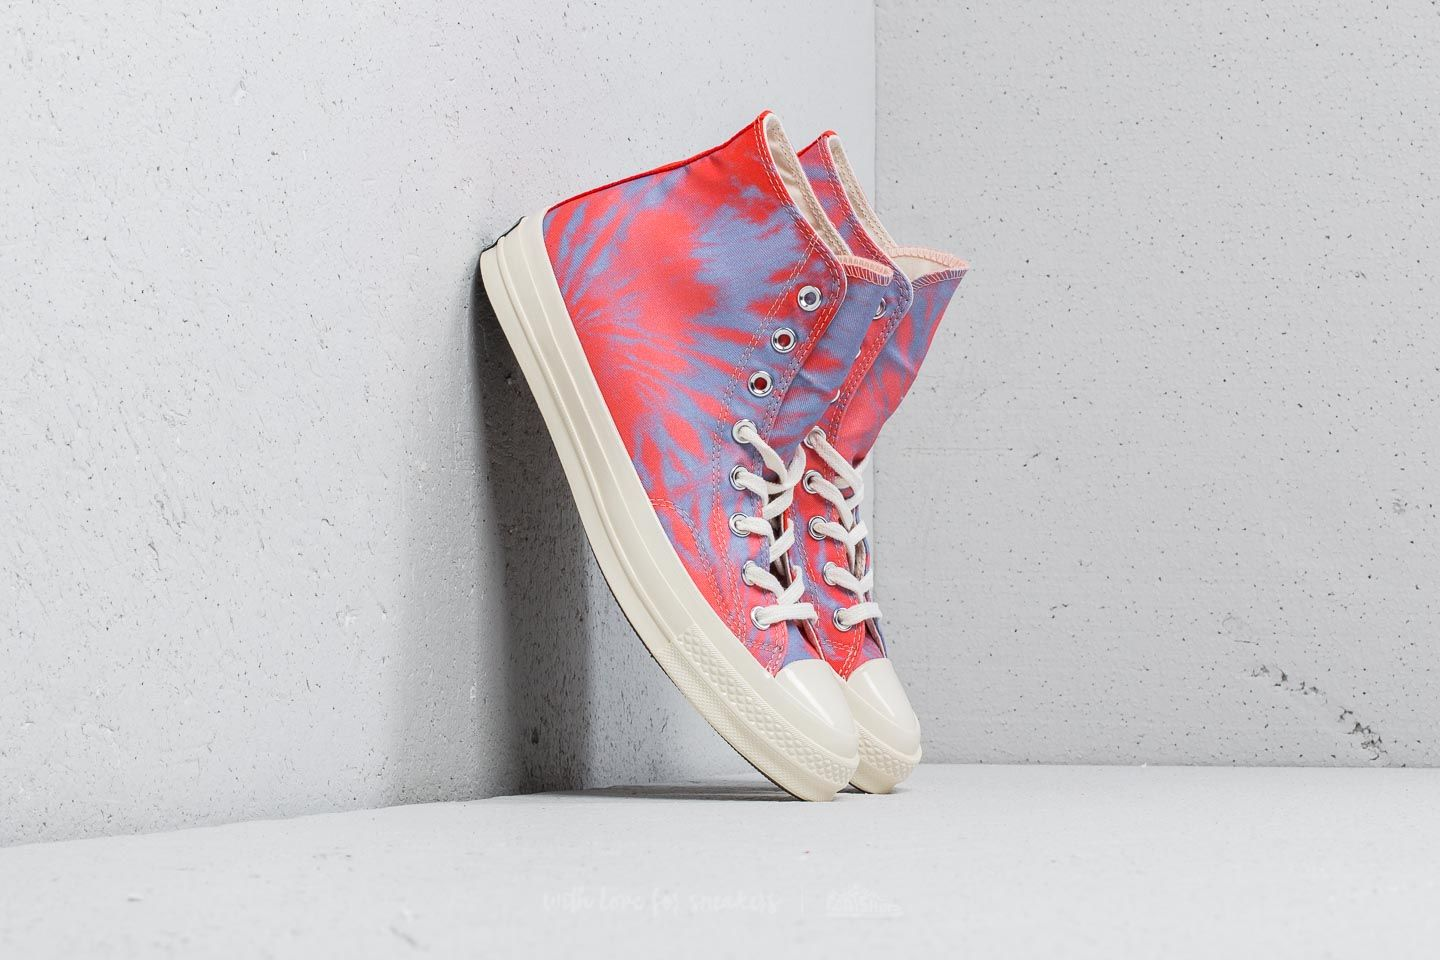 2a88cd7495d Converse Chuck Taylor All Star 70 Hi Pale Coral  Twilight Pulse za skvělou  cenu 1